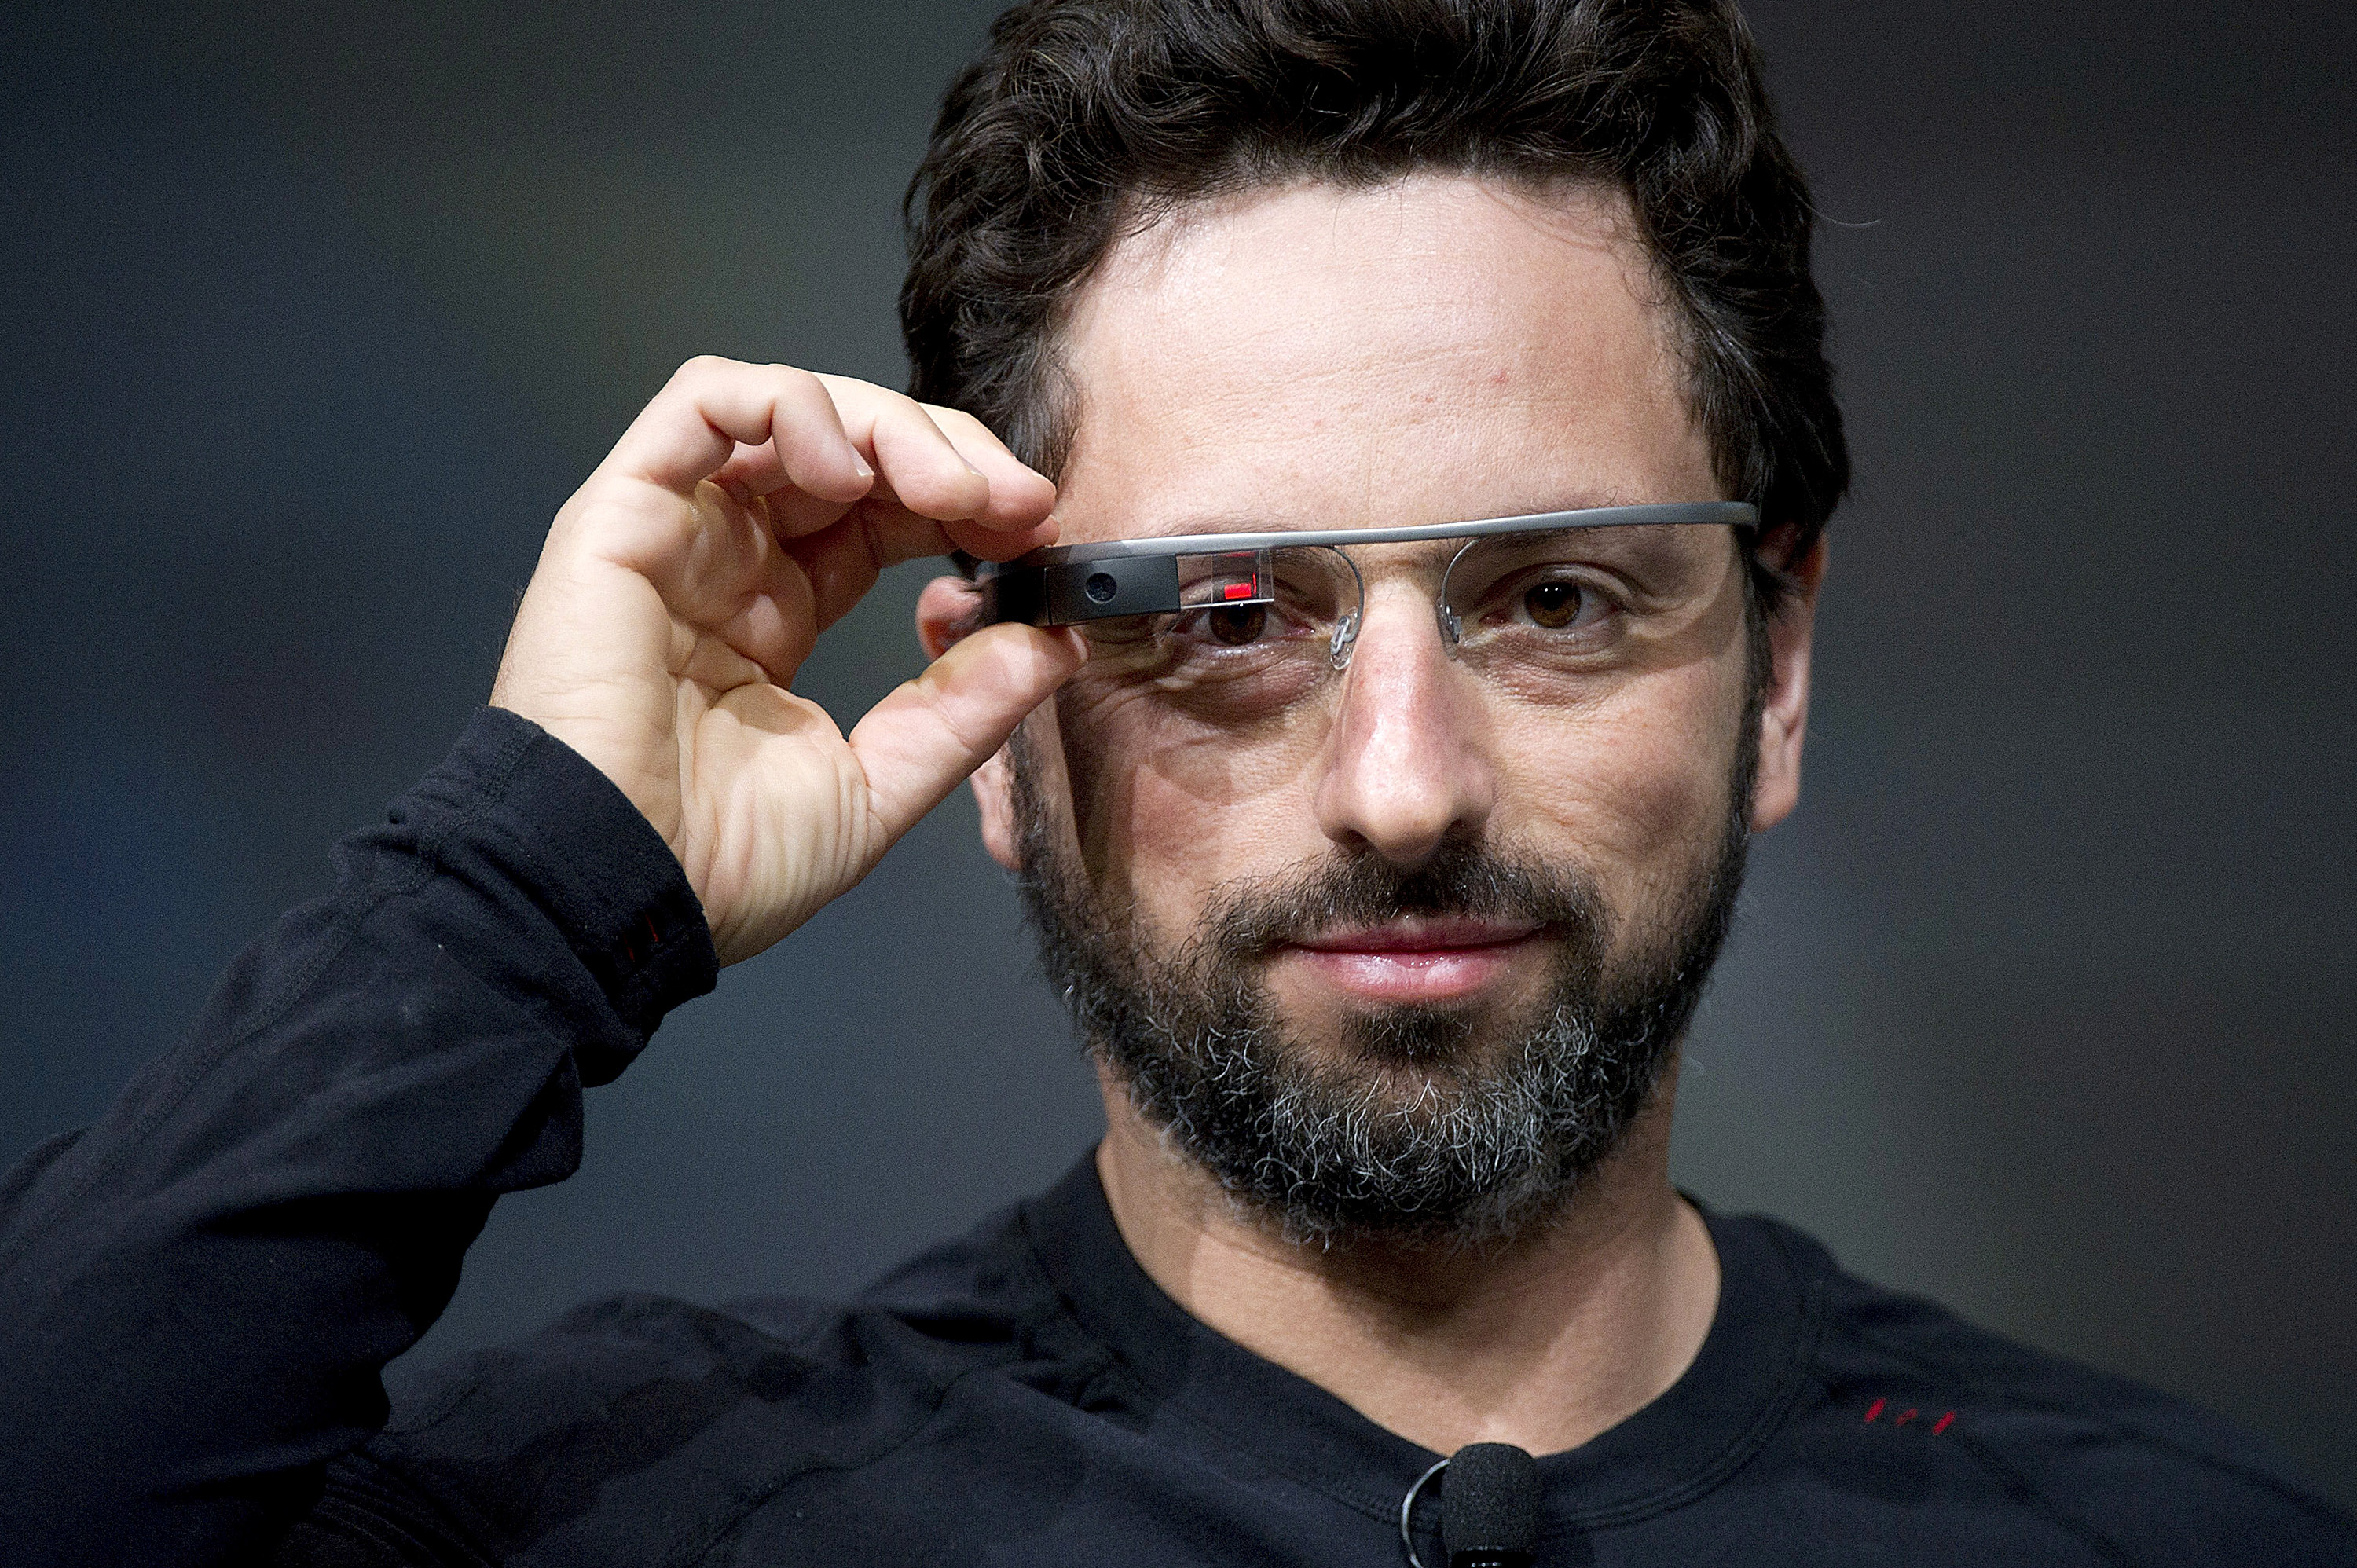 Sergey Brin - Co-founder of Google